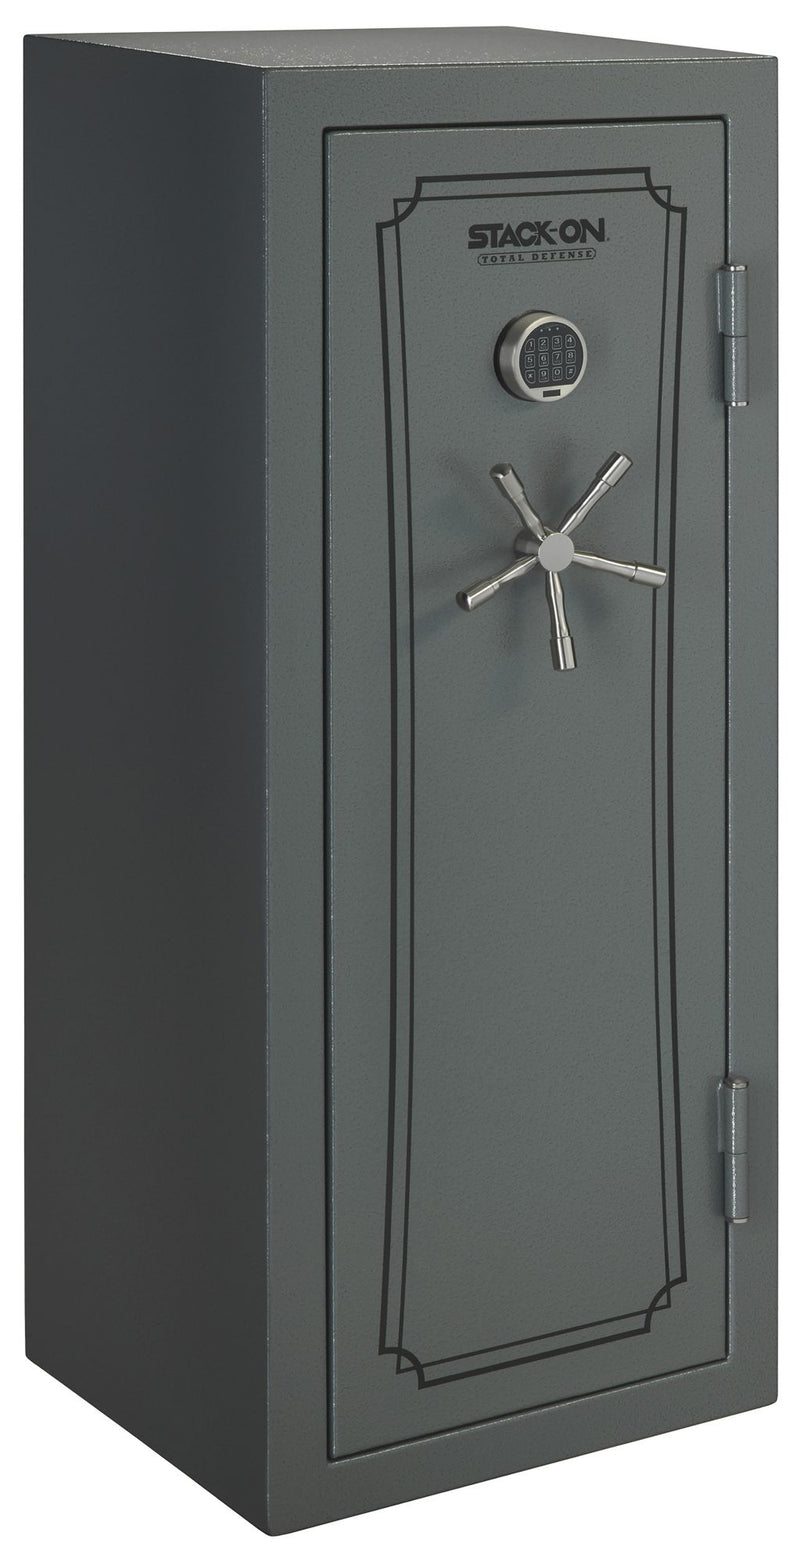 Stack-On Total Defense 24-Gun Convertible Executive Safe w/ Electronic Lock - Gray Pebble